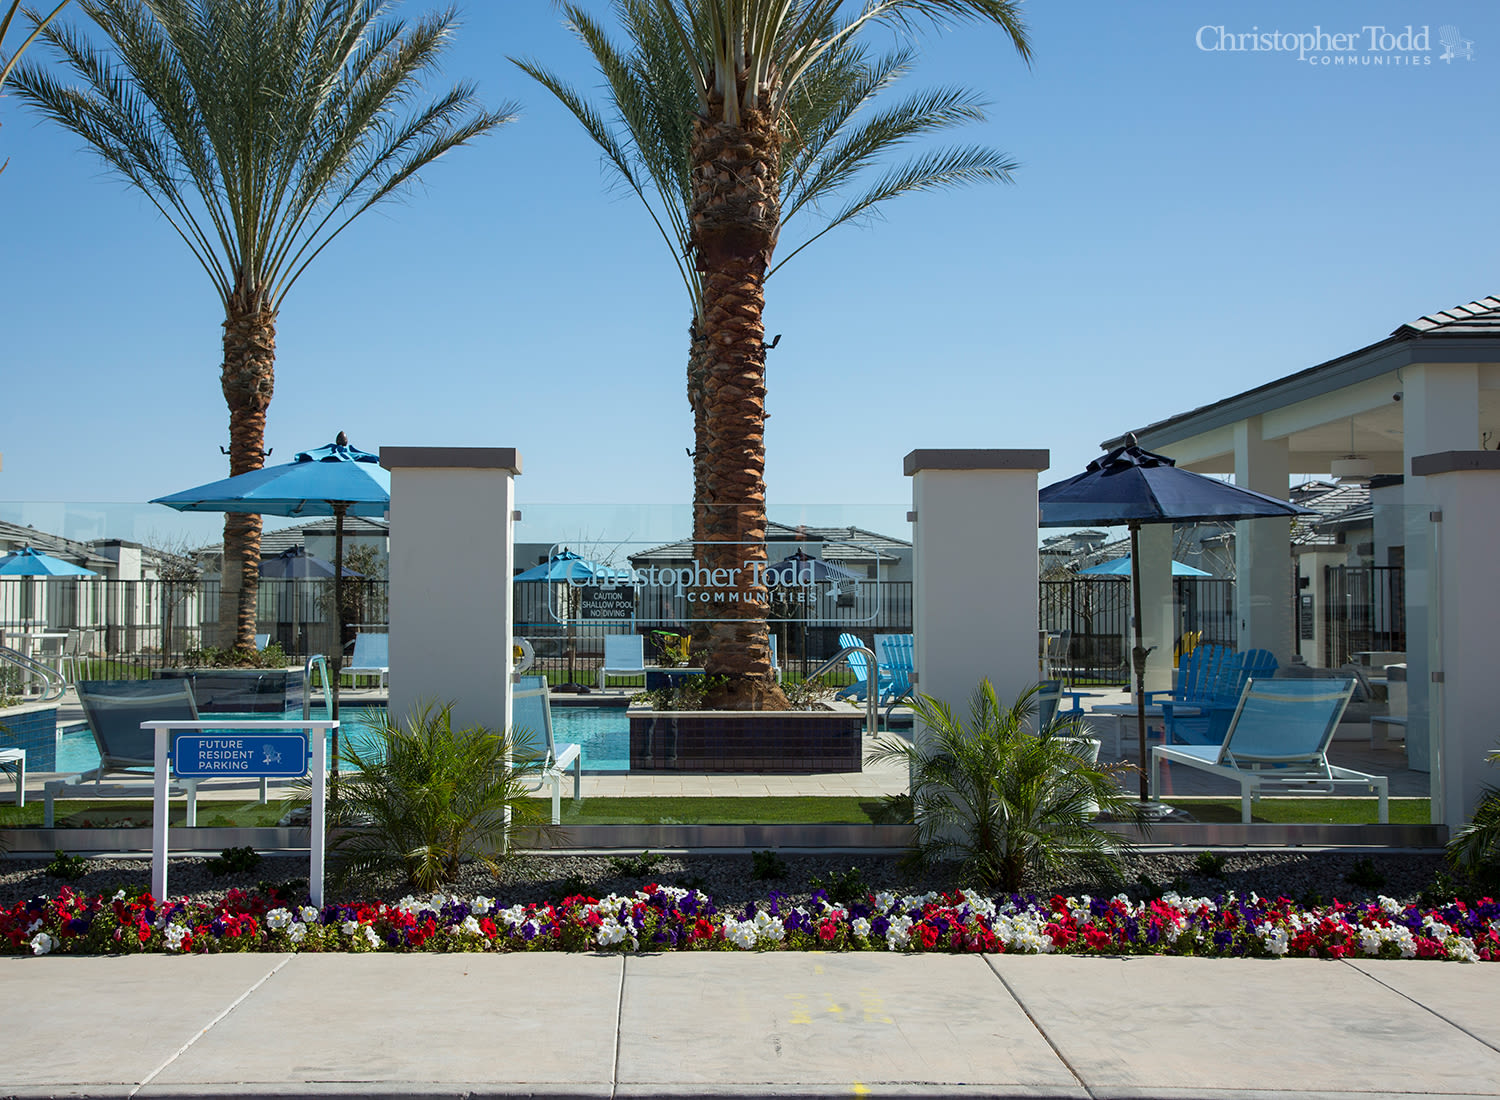 Christopher Todd Communities on Camelback apartments in Litchfield Park, Arizona